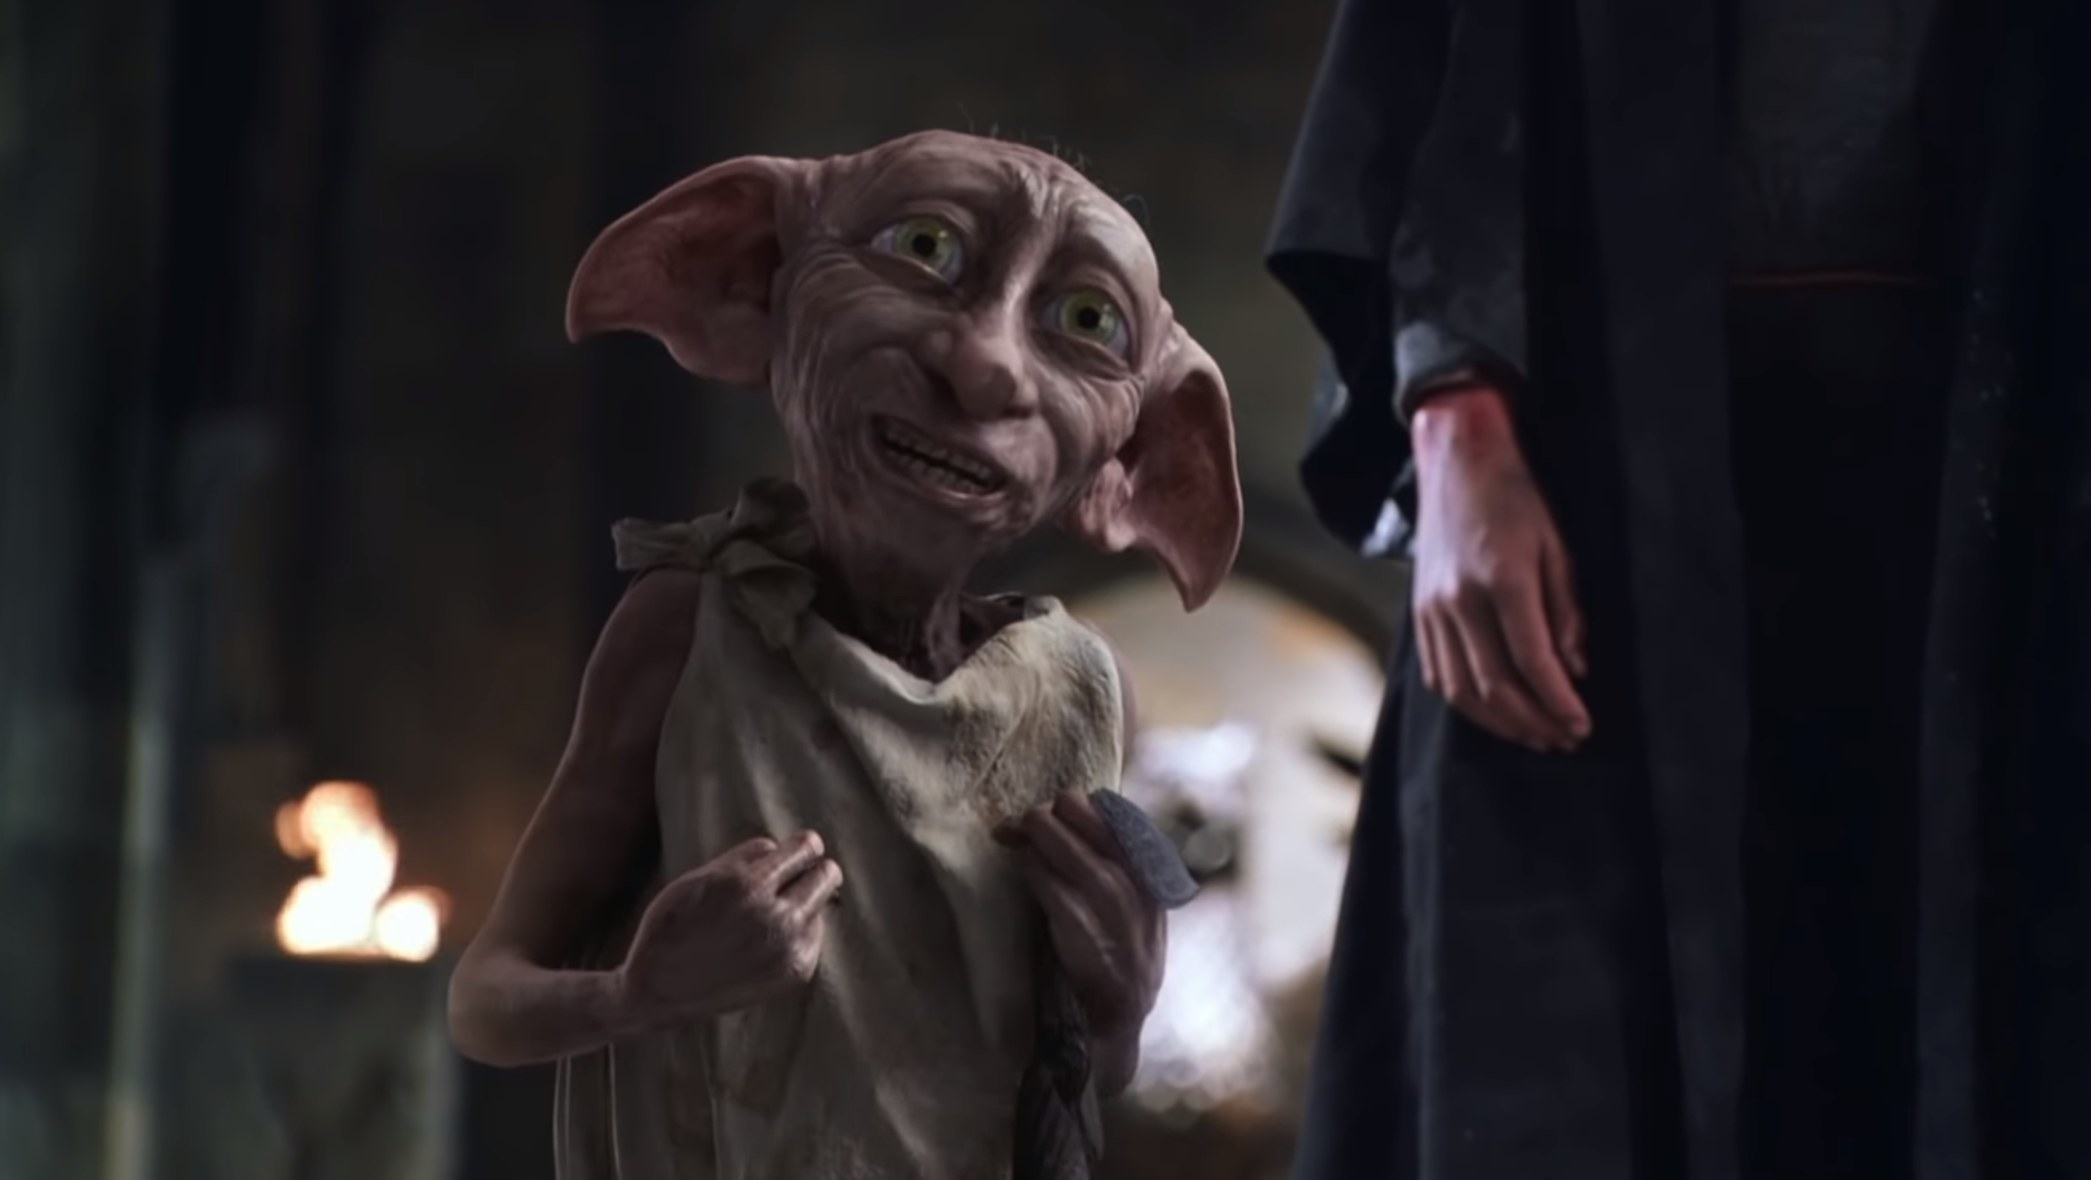 Dobby by Lucius Malfoy's side looking at Harry Potter with a lot of love